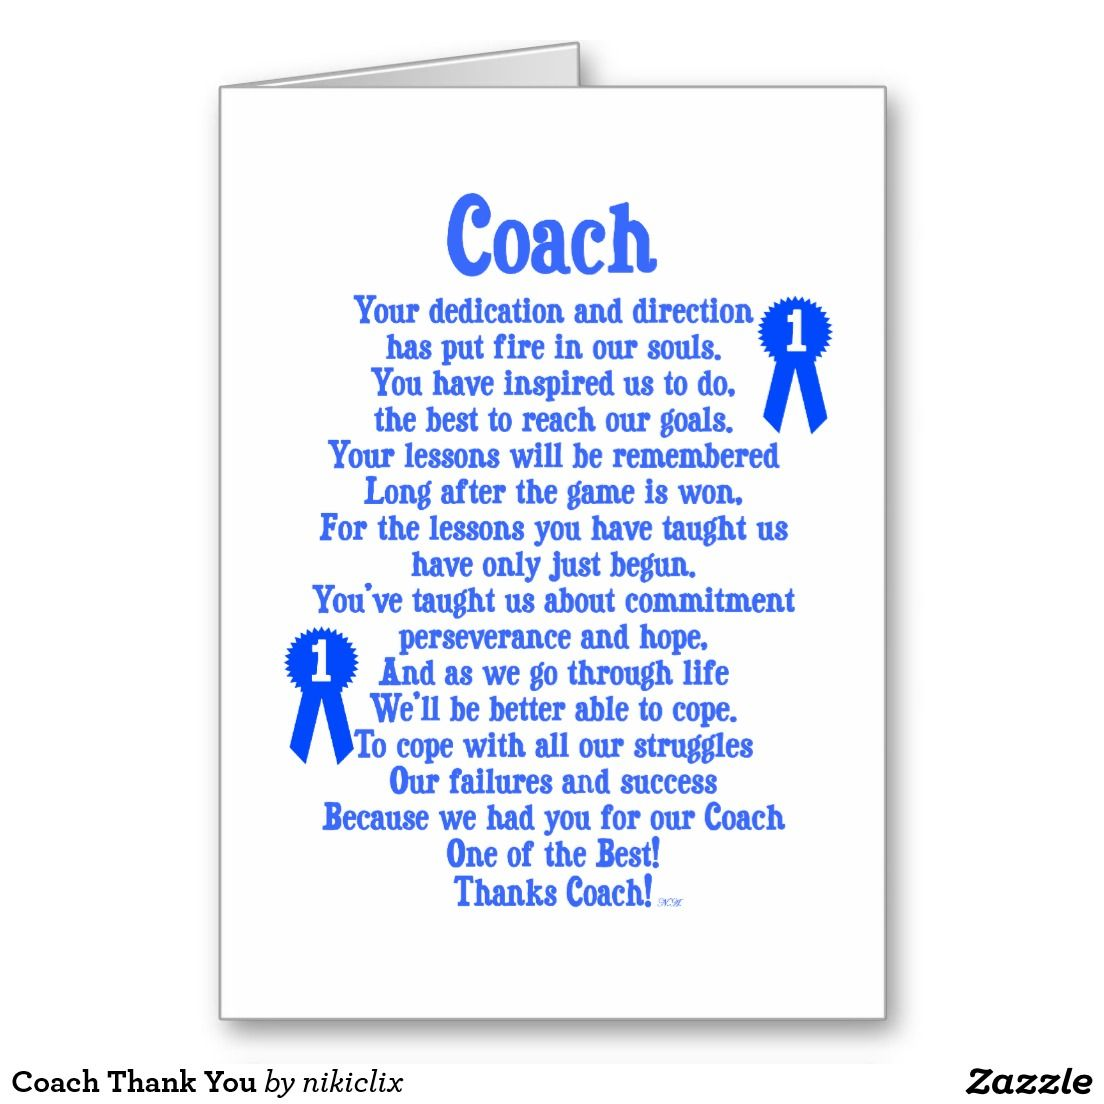 Coach Thank You Zazzle Com Coach Quotes Cheer Coach Gifts Thank You Poems